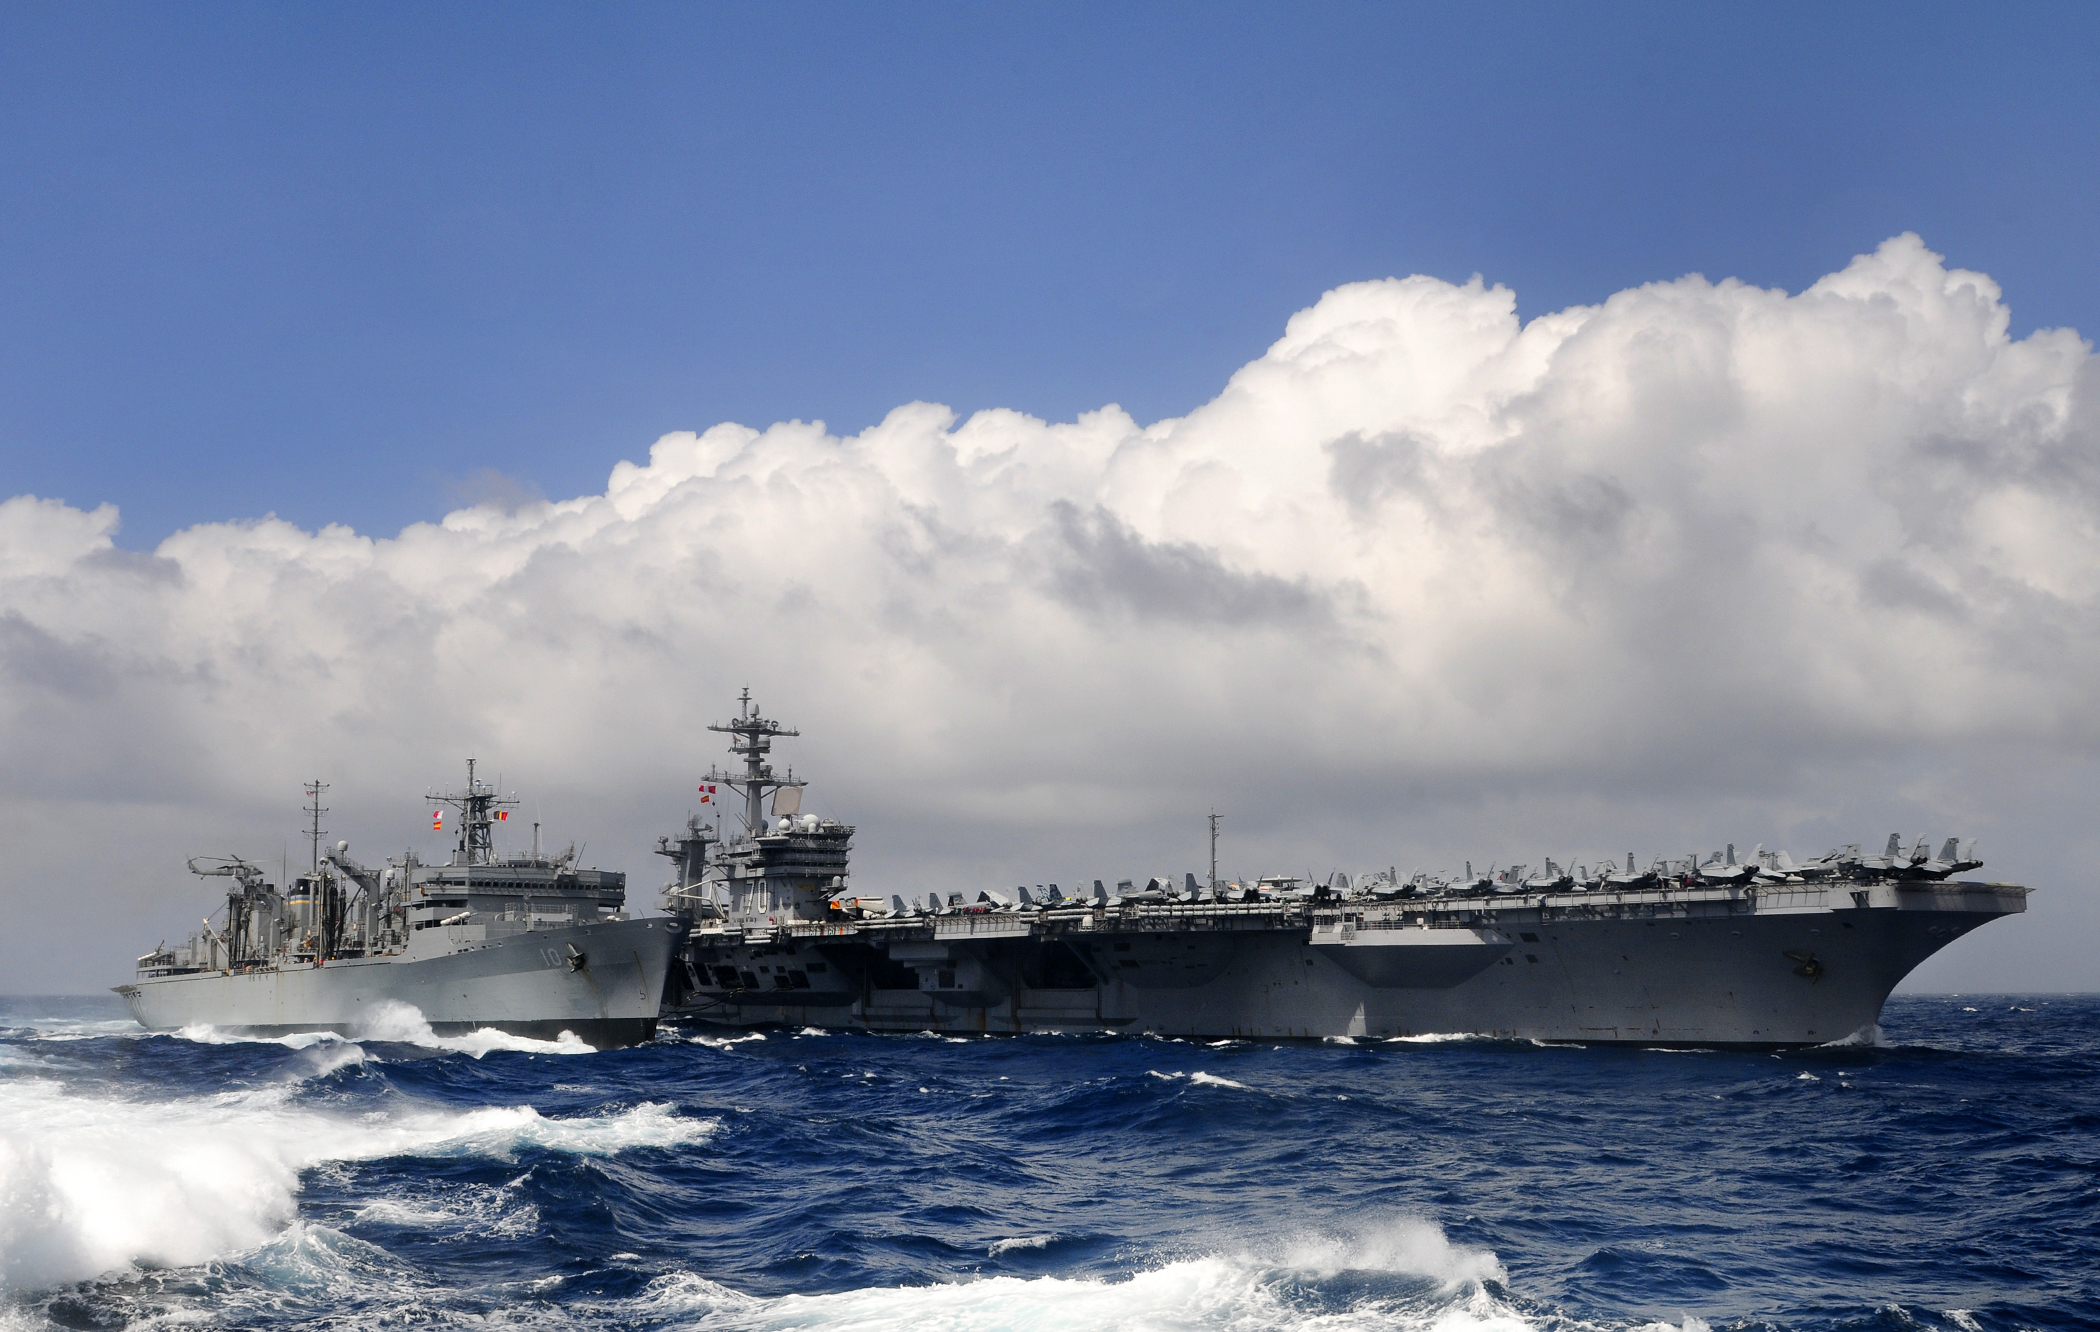 Aircraft carrier uss carl vinson cvn 70 and the military sealift